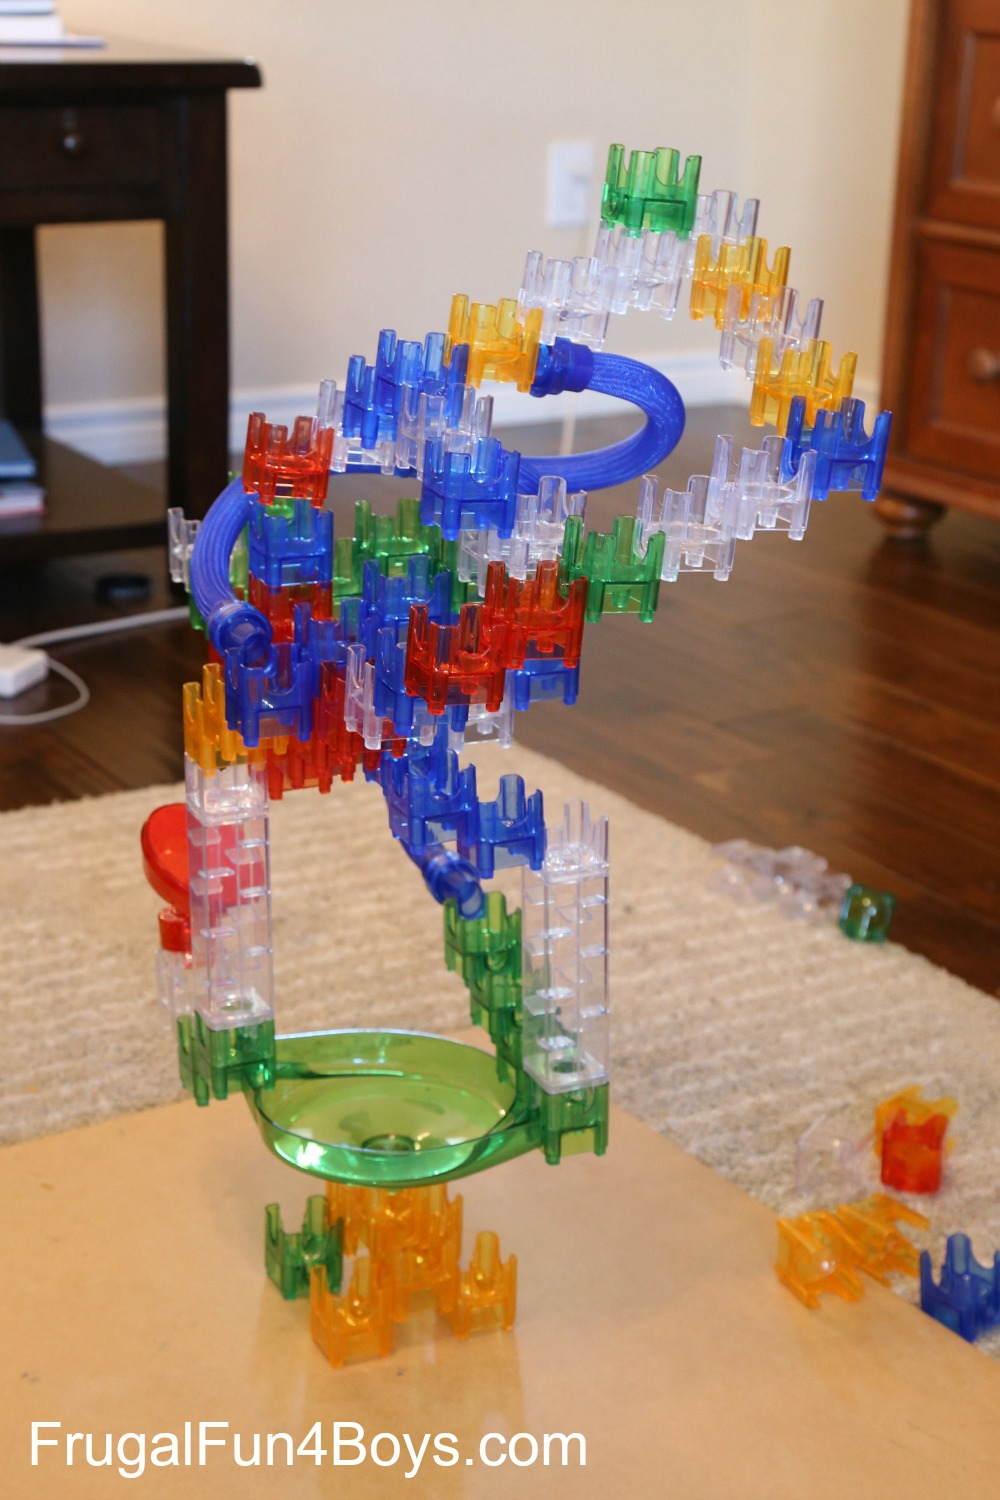 The Best Marble Runs for Kids